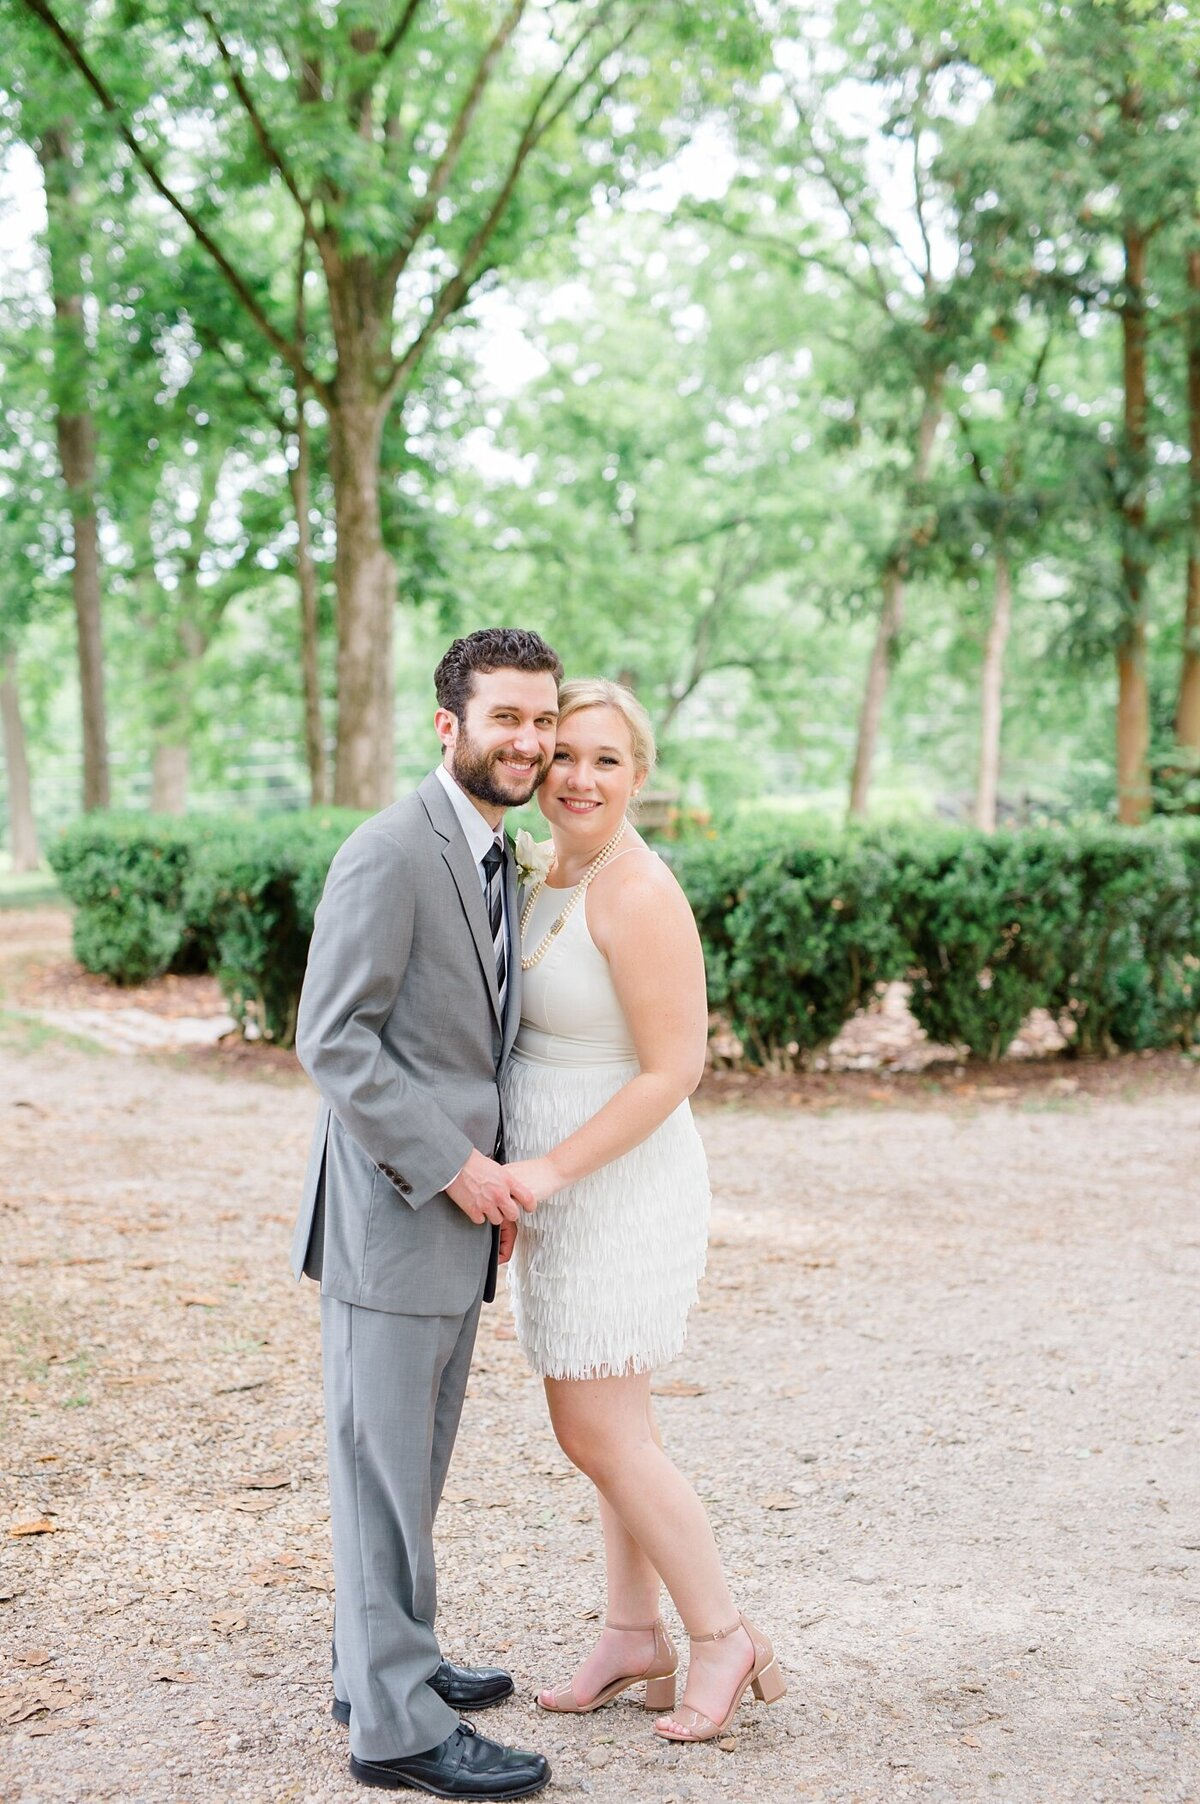 nutwood-vineyards-wedding-lagrange-georgia-laura-barnes-photo-22